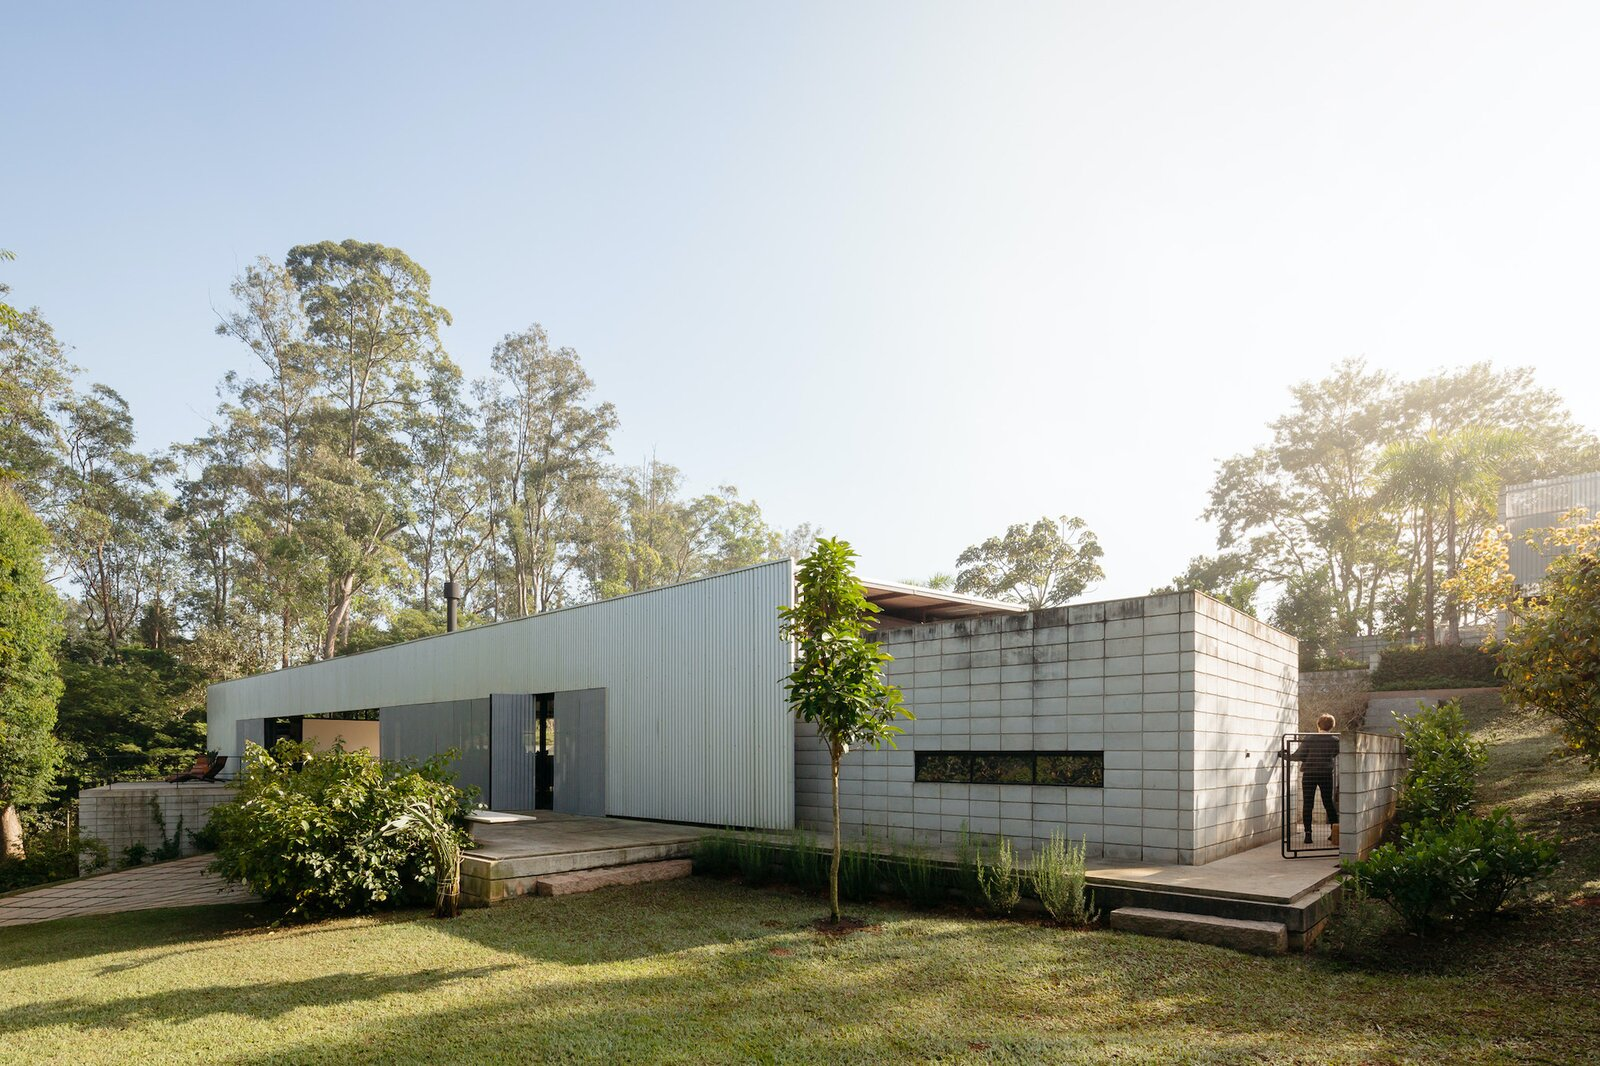 Cabin Vibes Get an Industrial Edge at This Brazilian Home